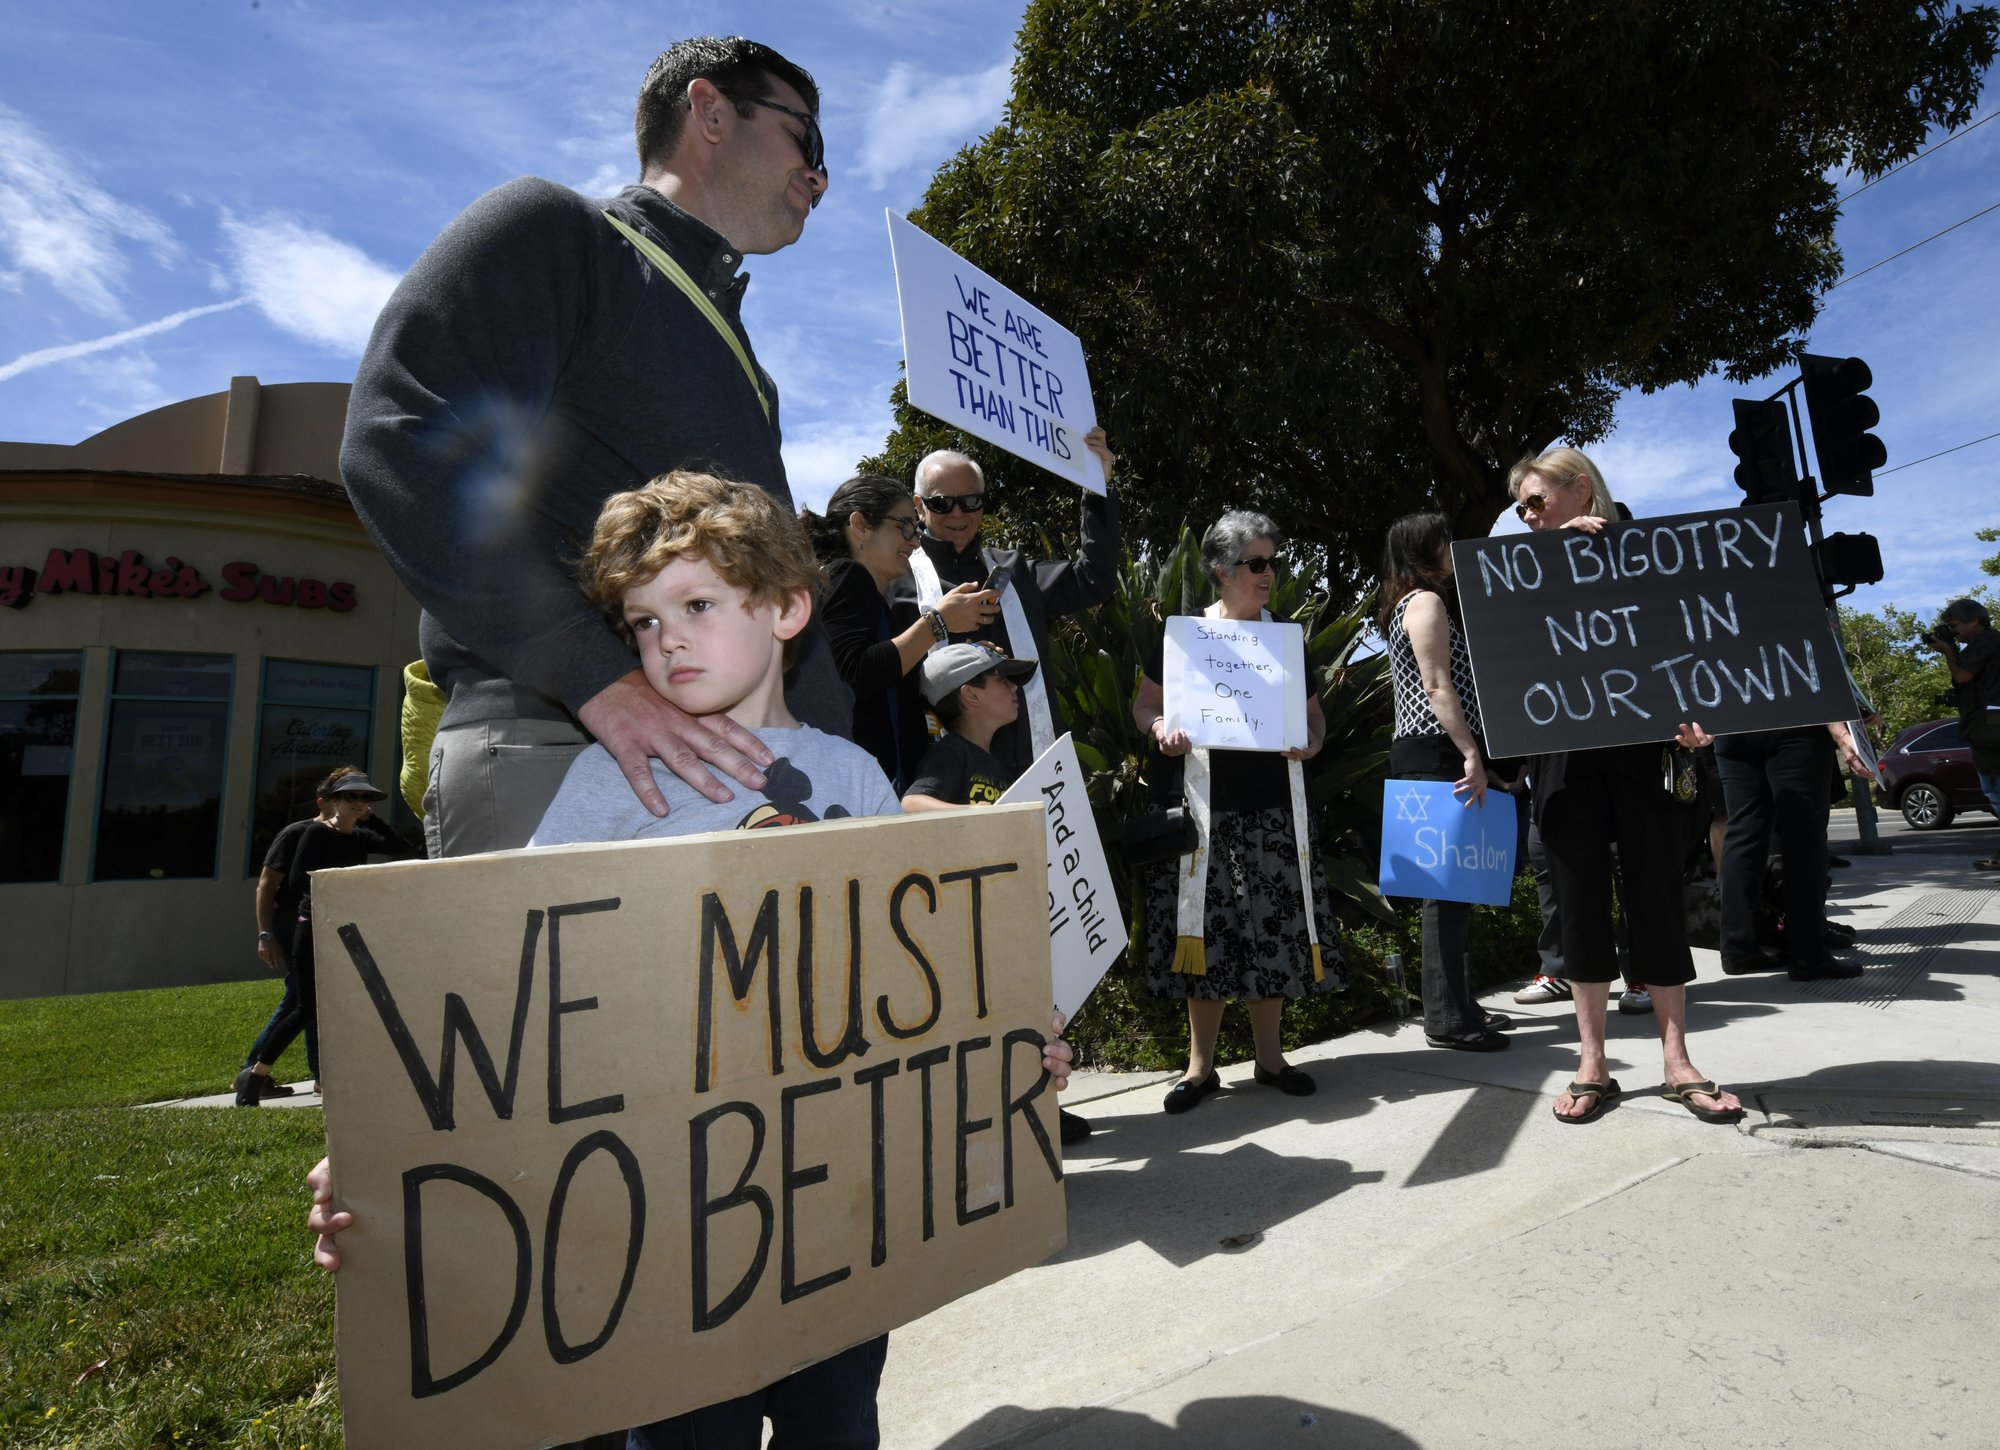 Worshipper saved grandson in California synagogue attack